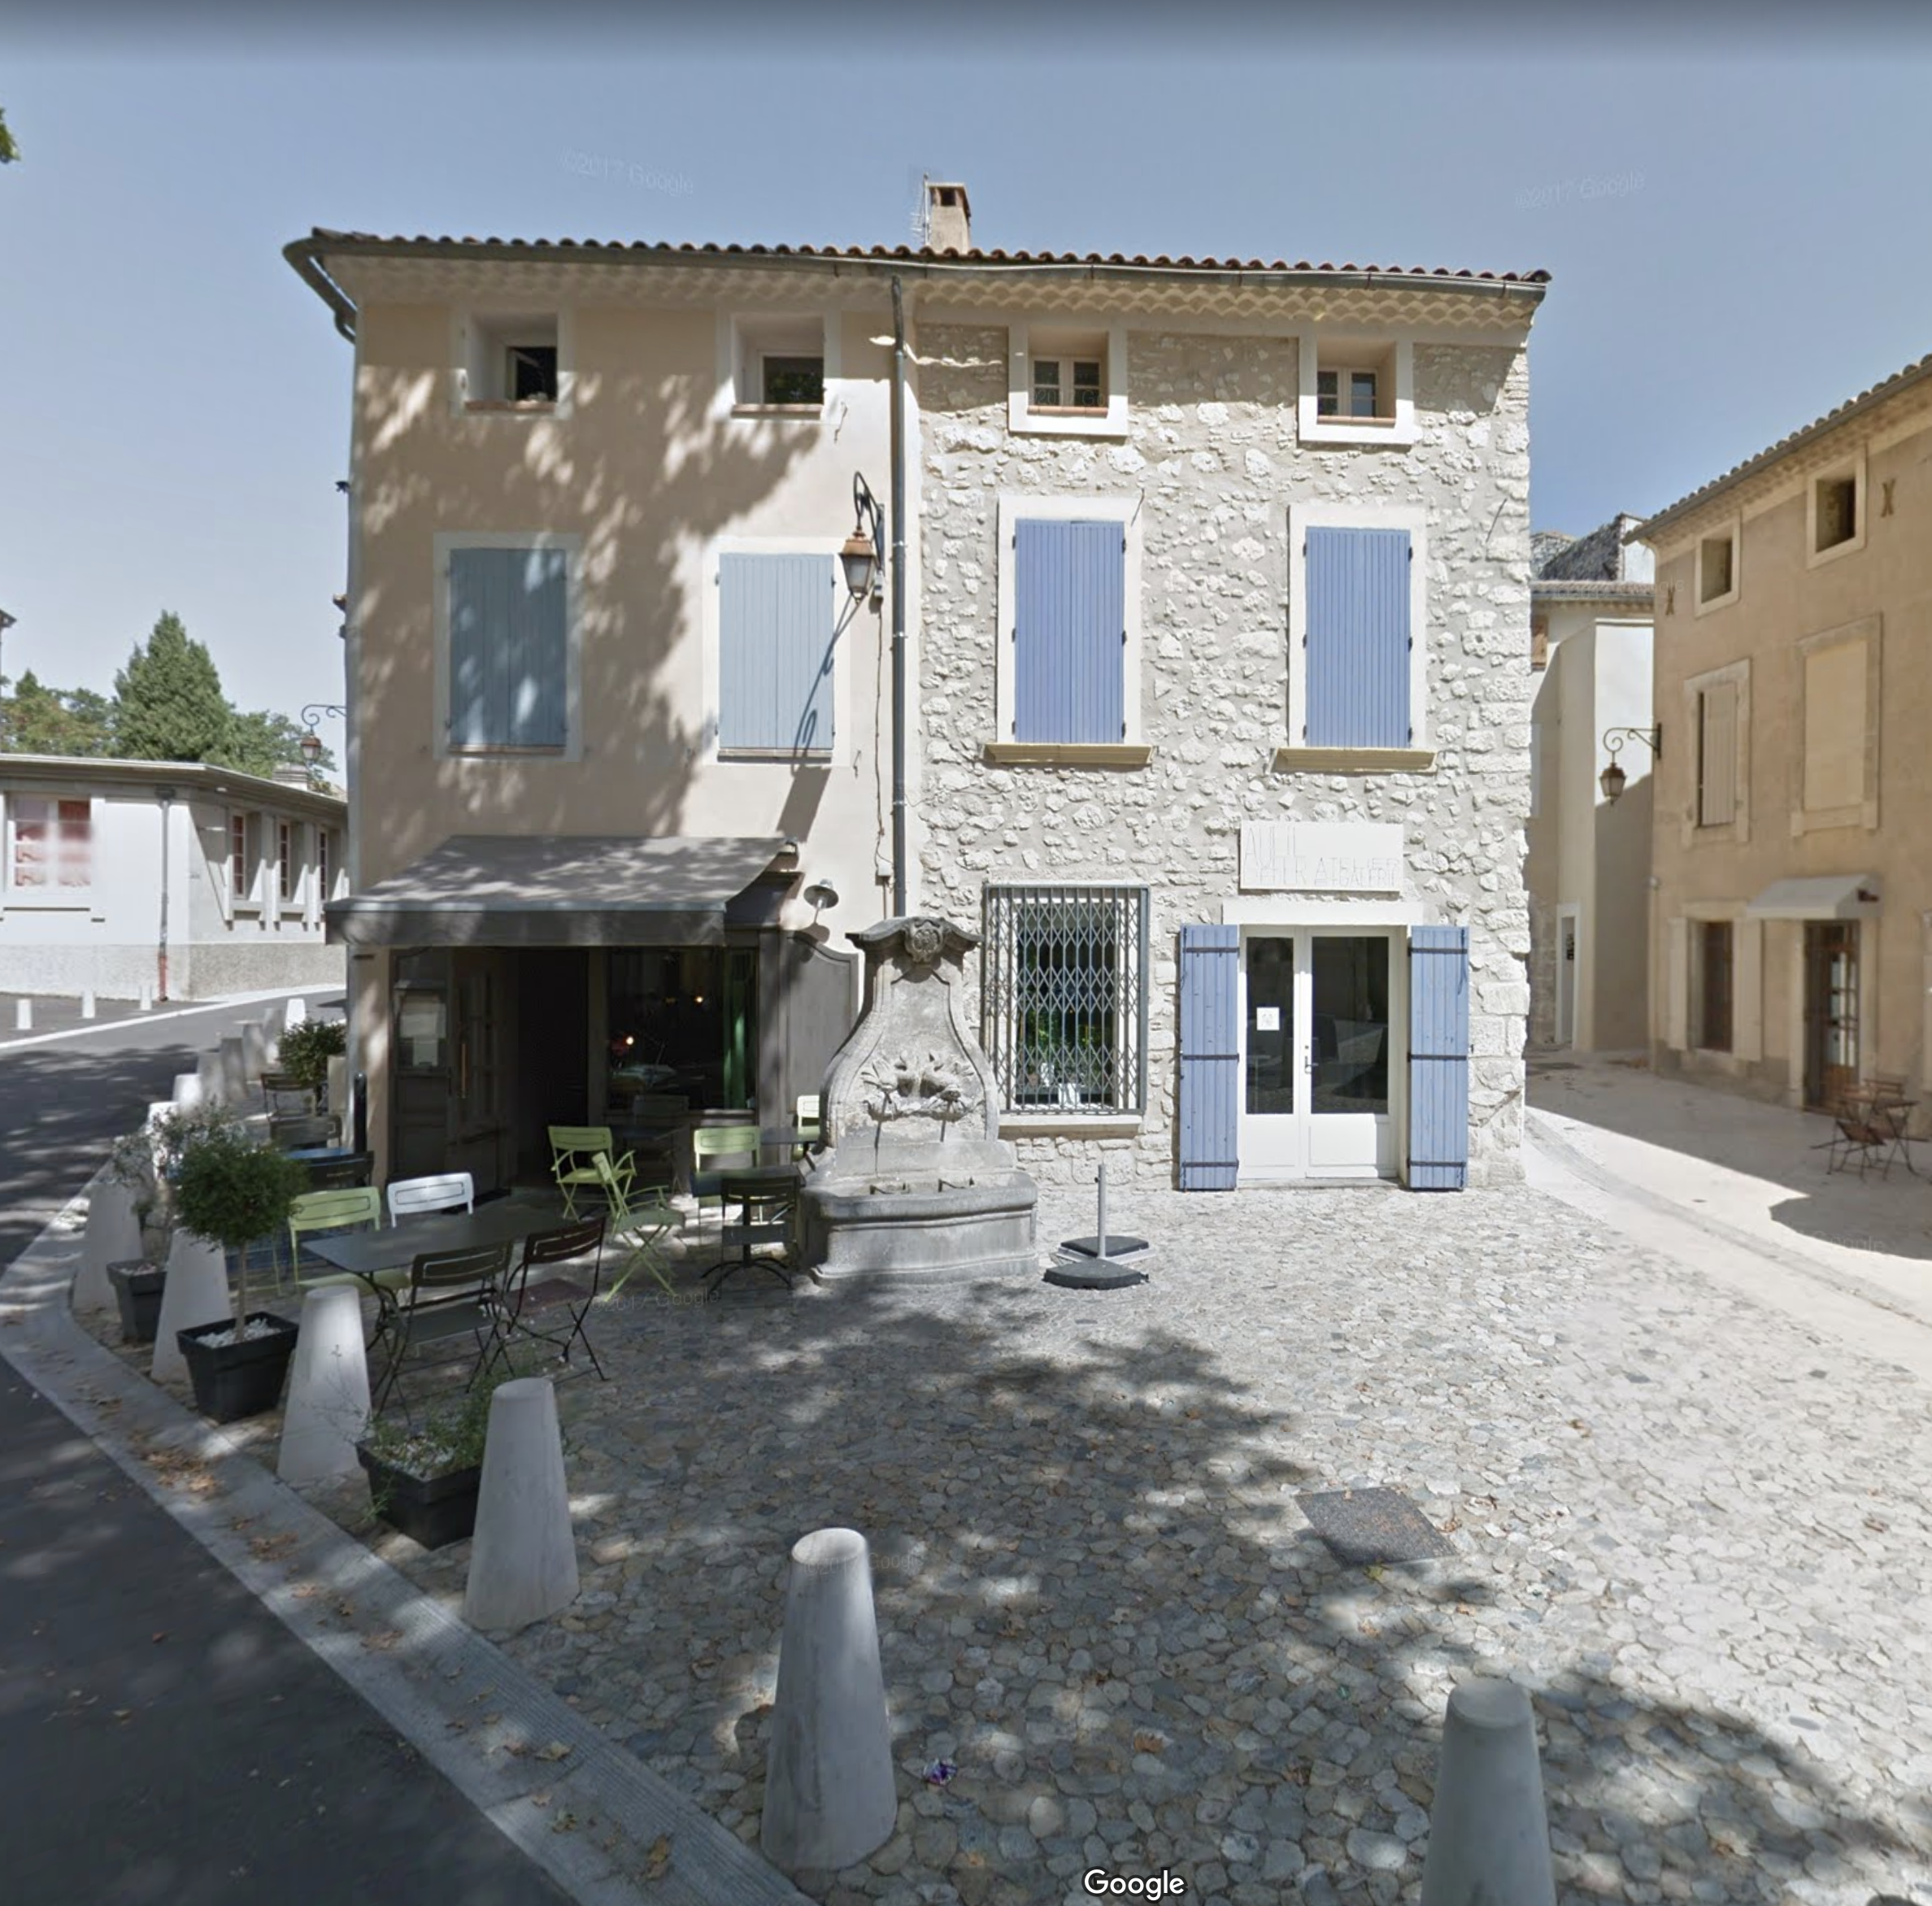 'Au Fil du Temps' in daylight. Click on the picture and link to a Google Maps 'street view' and wander around the rest of Pernes-les-Fontaines. It's a lovely town to walk through - even electronically!